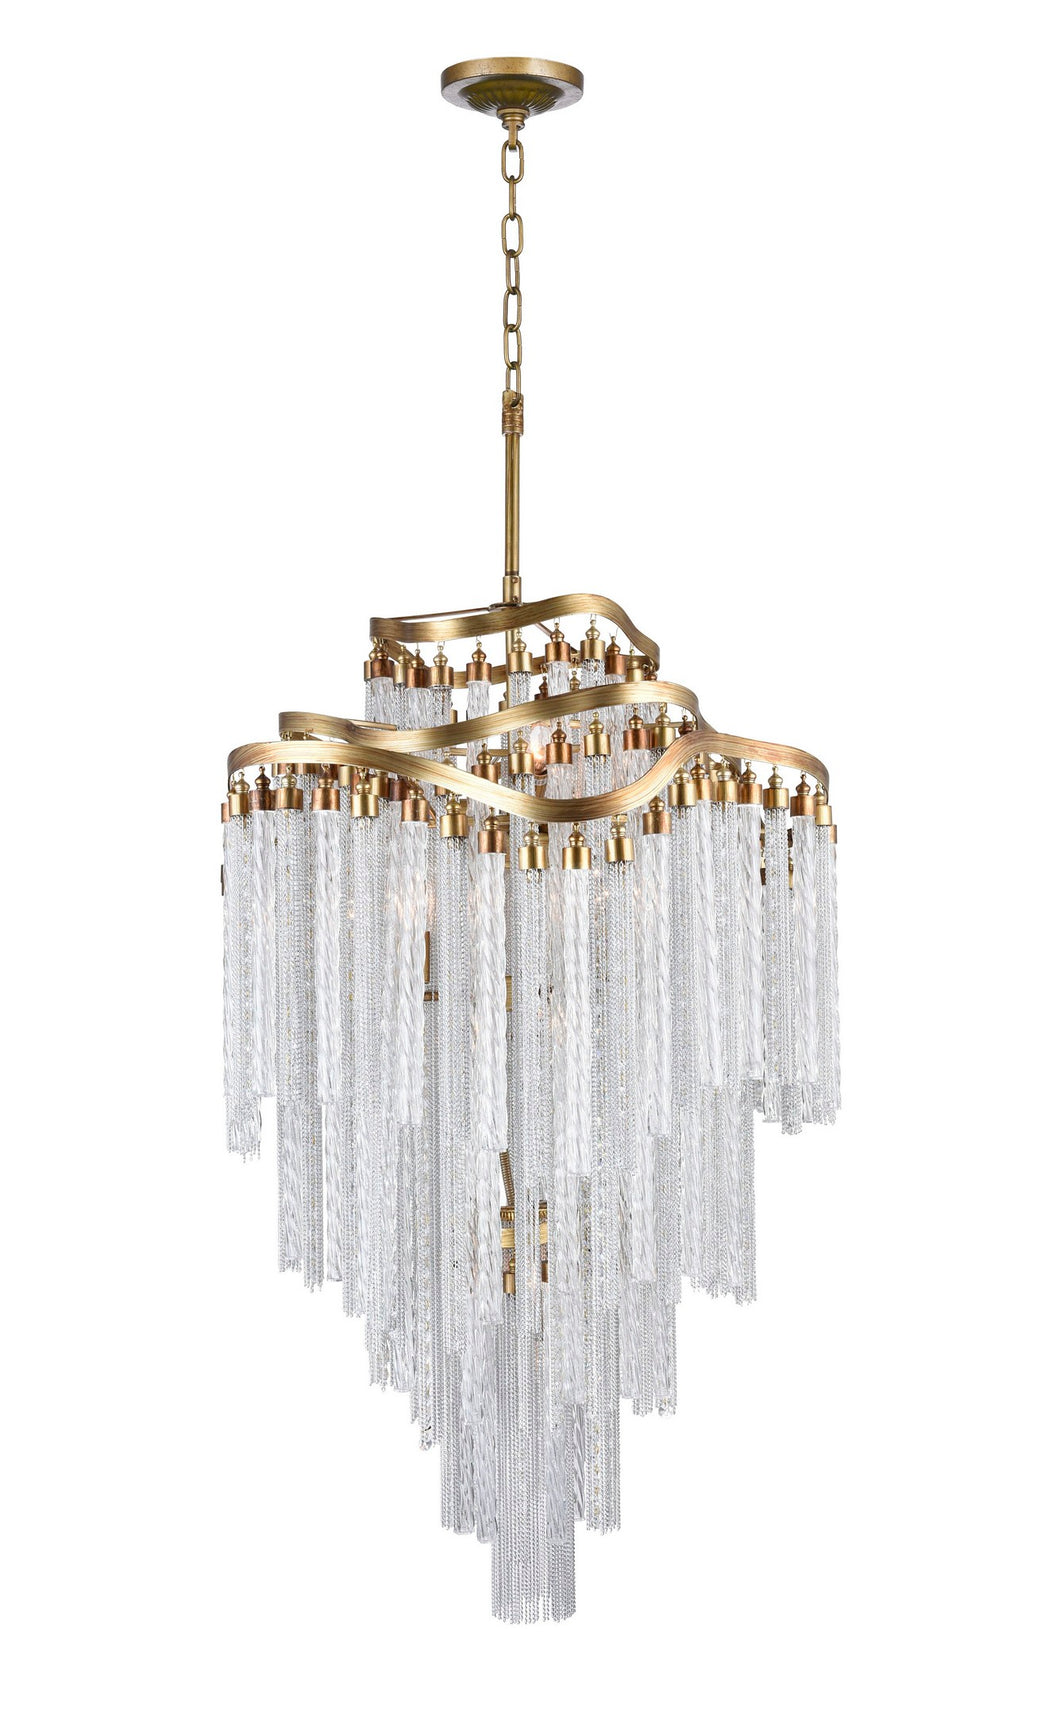 14 LIGHT DOWN CHANDELIER WITH GOLD FINISH - Dreamart Gallery